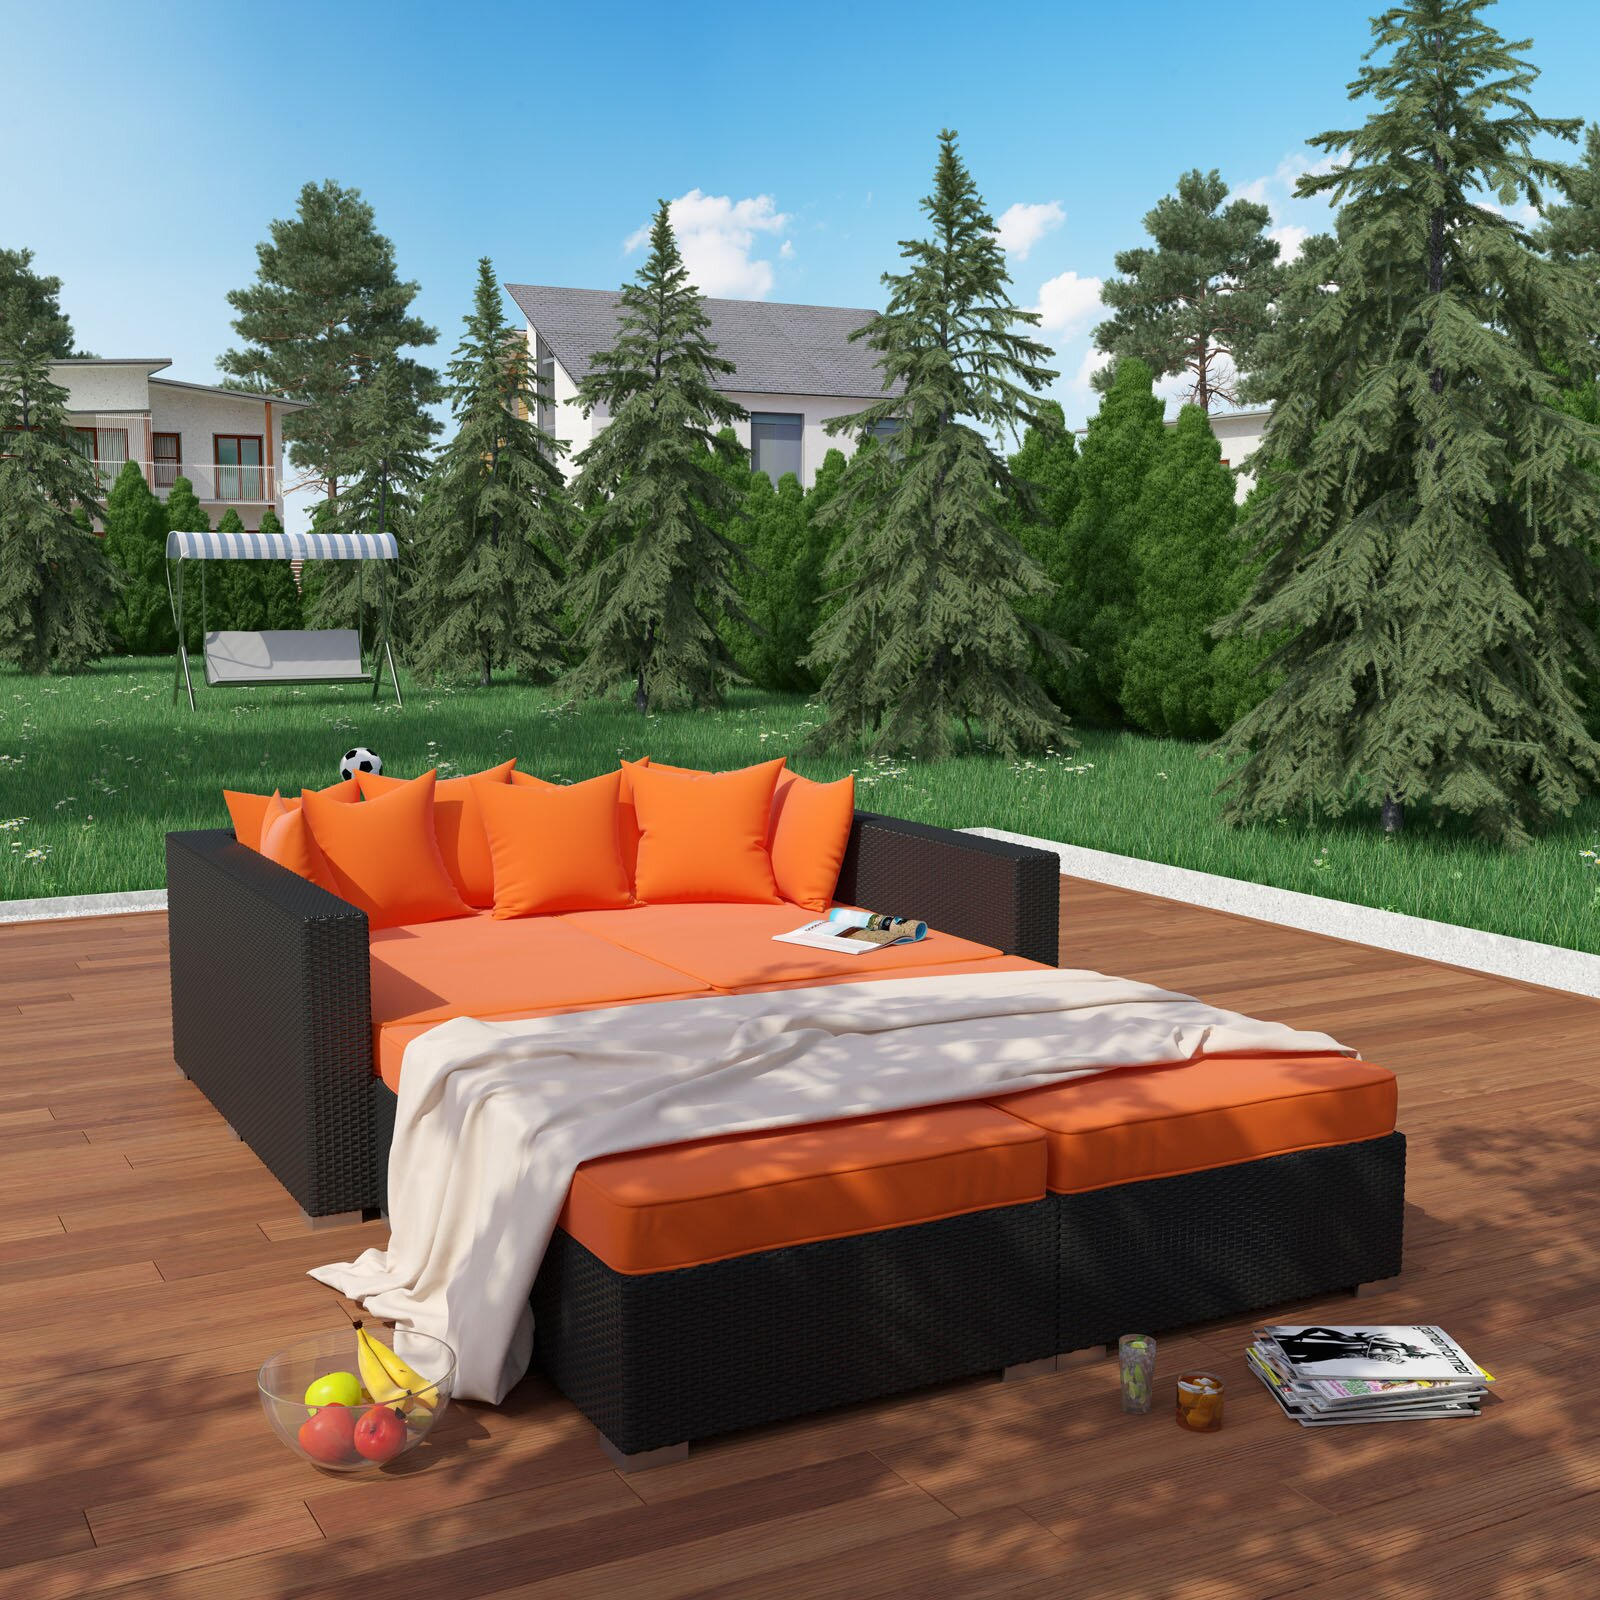 modway fence 4 outdoor patio daybed with cushions